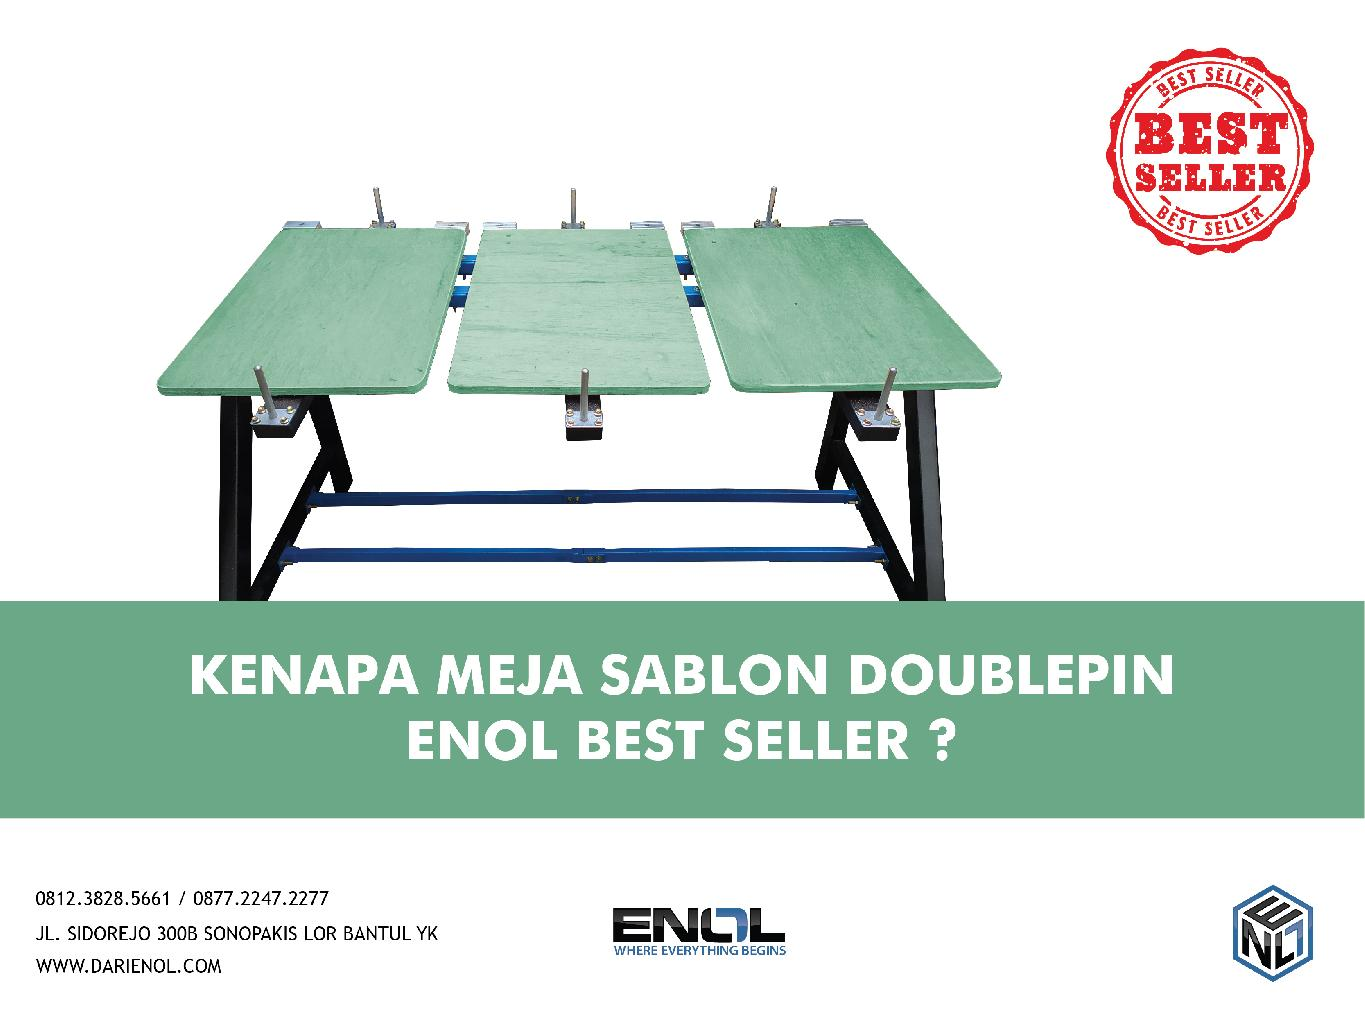 Kenapa Meja Double Pin Enol Best Seller